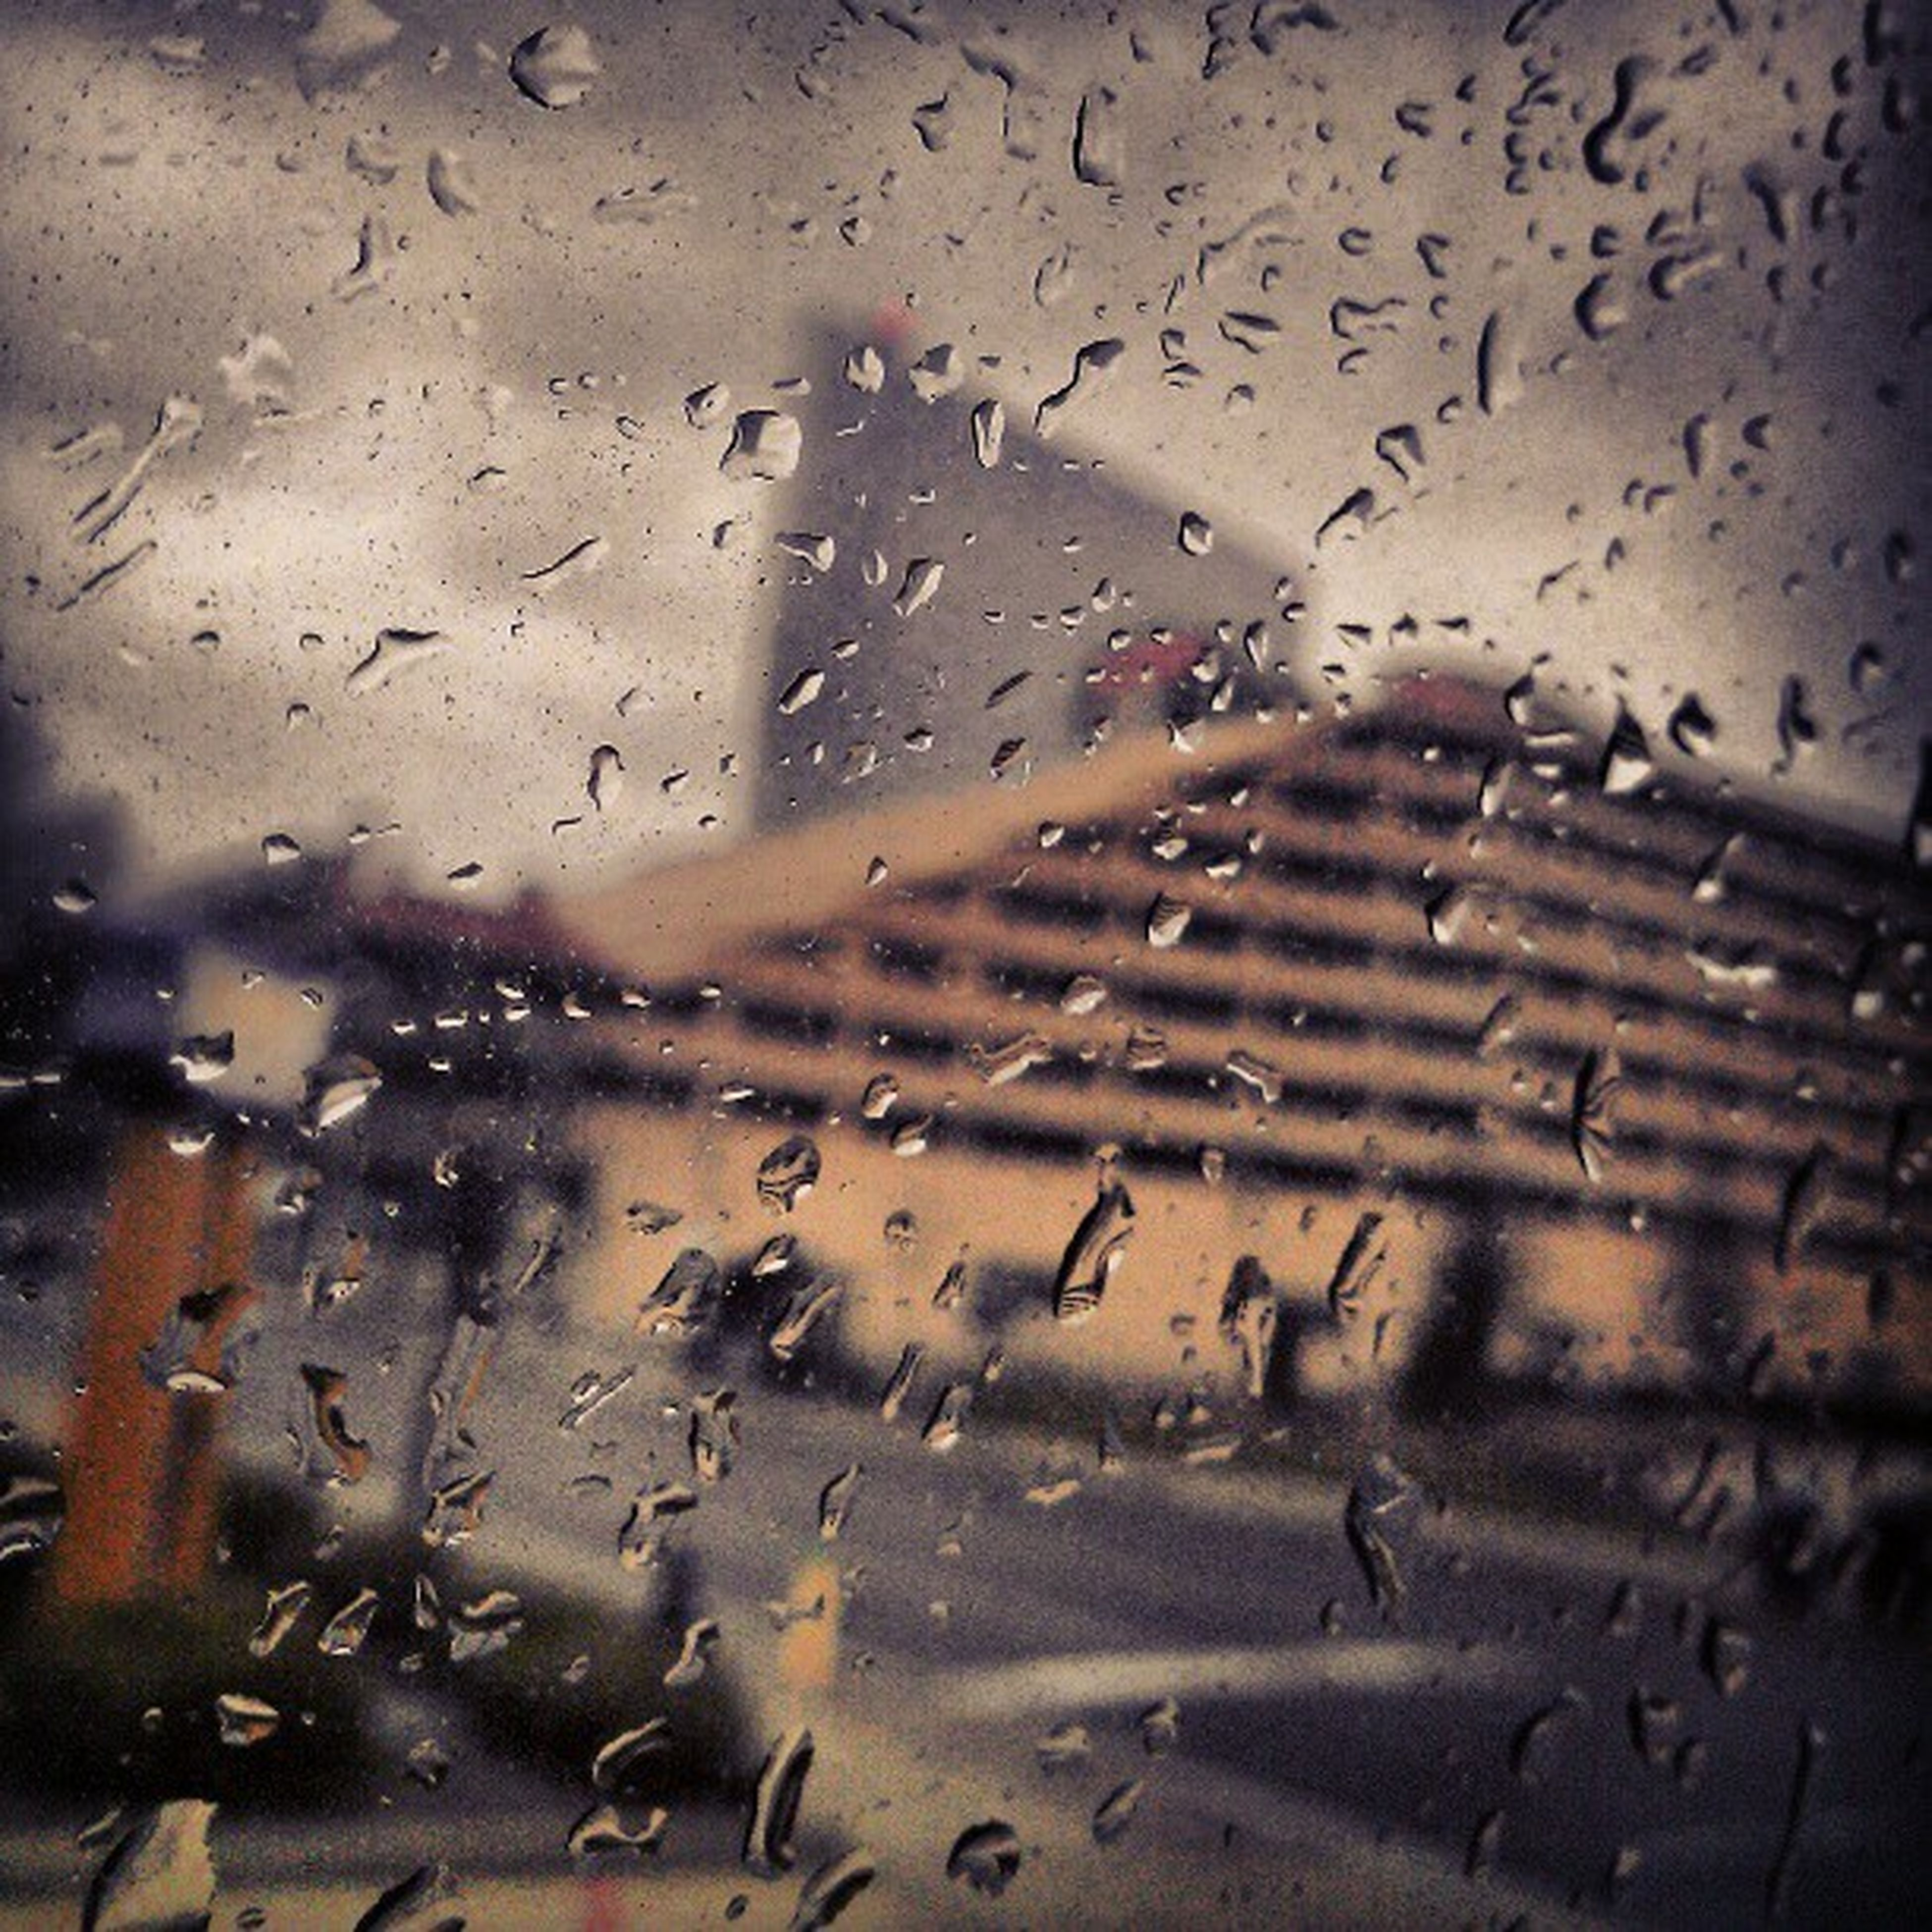 drop, wet, water, window, rain, transparent, indoors, glass - material, weather, season, raindrop, full frame, backgrounds, sky, glass, flying, no people, focus on foreground, nature